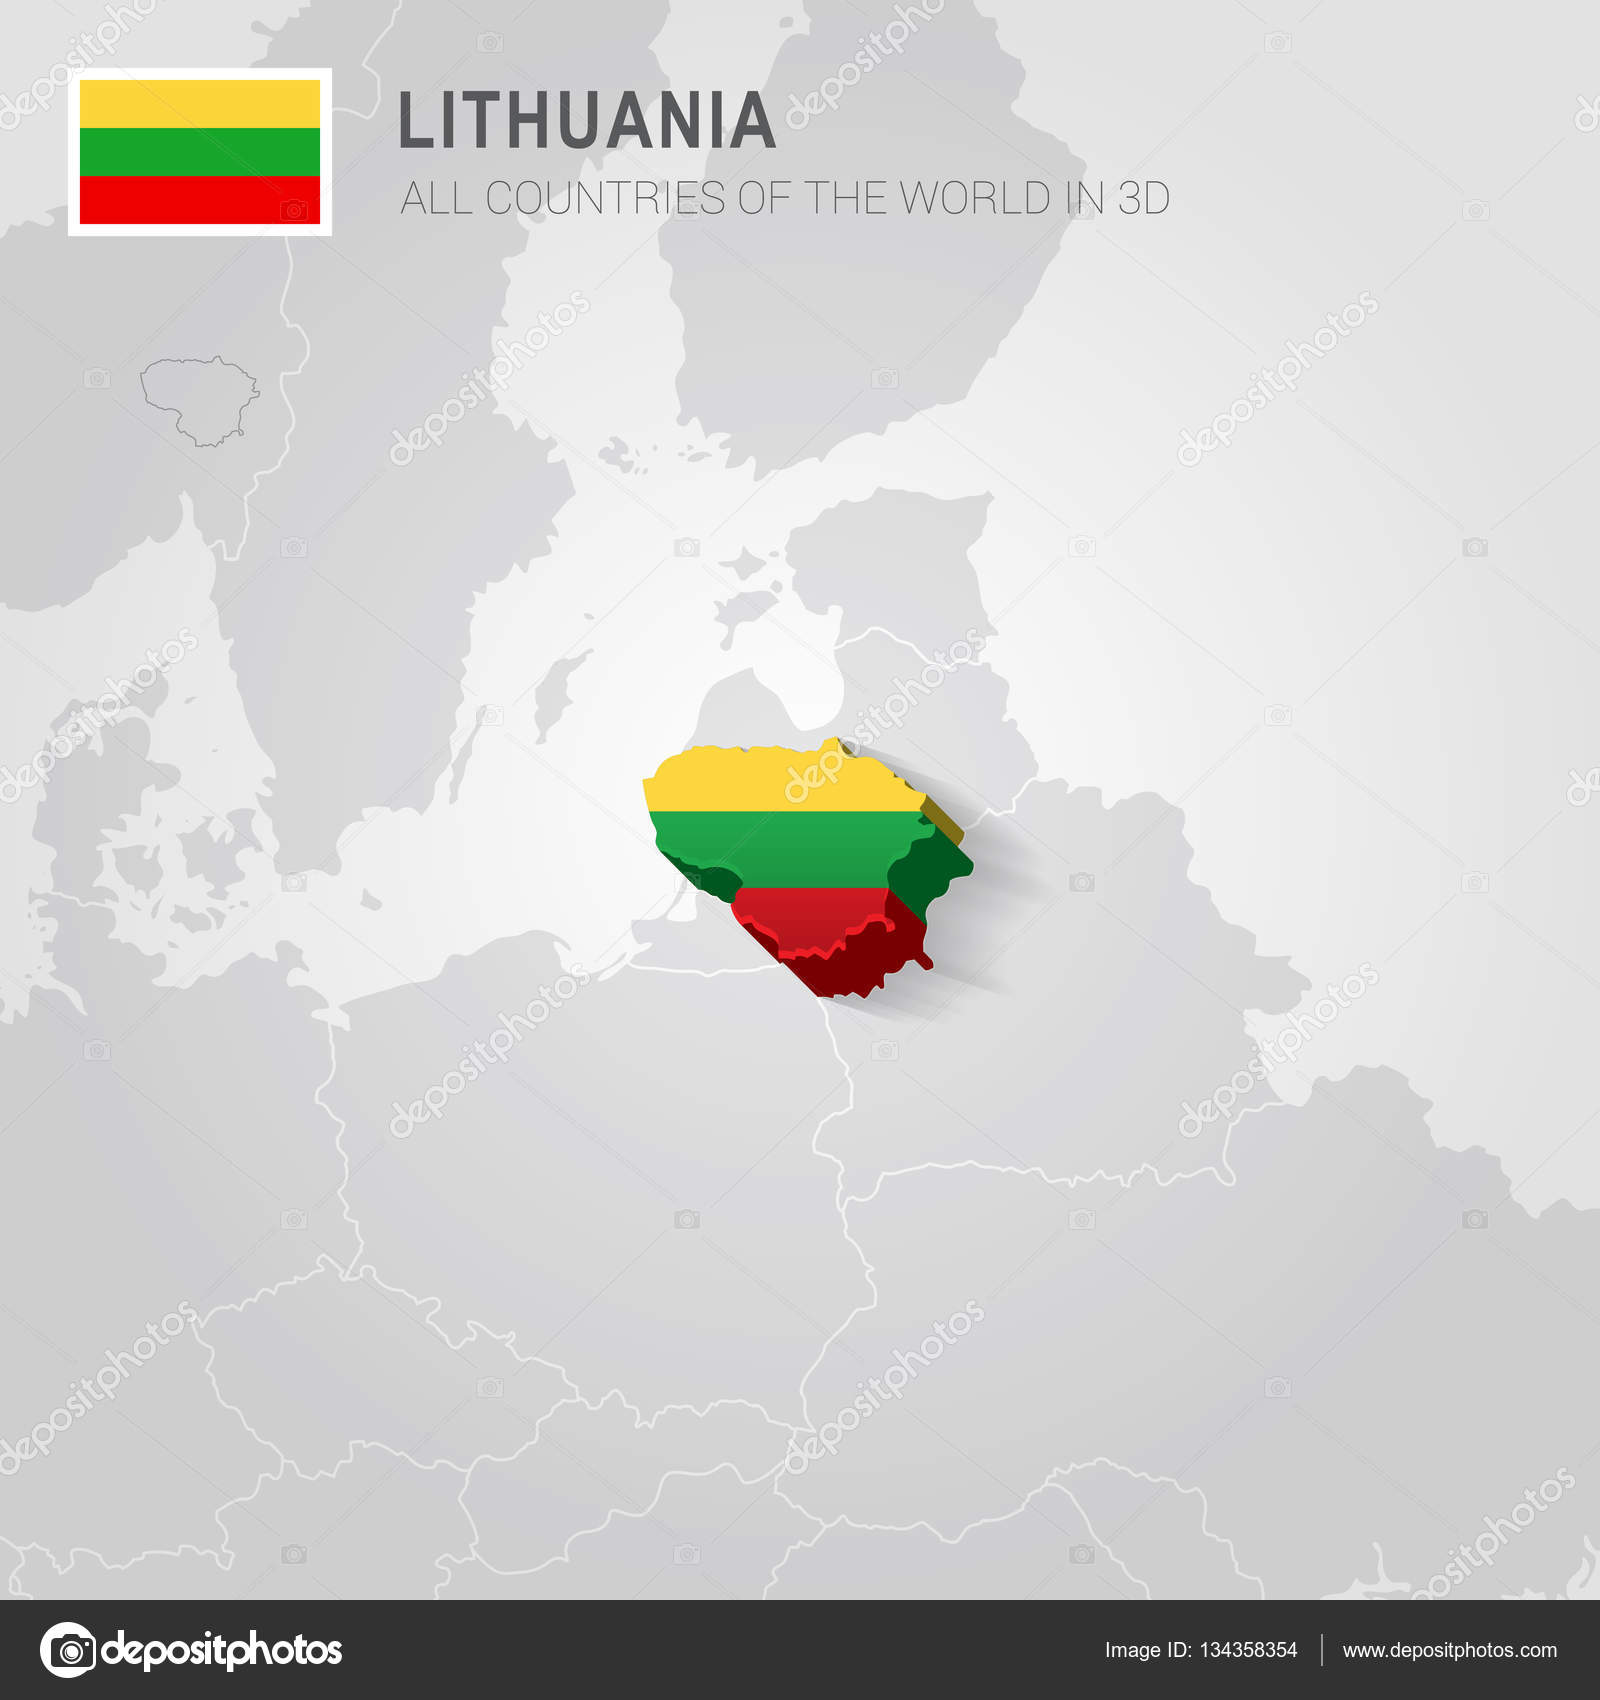 Lithuania and neighboring countries Europe administrative map